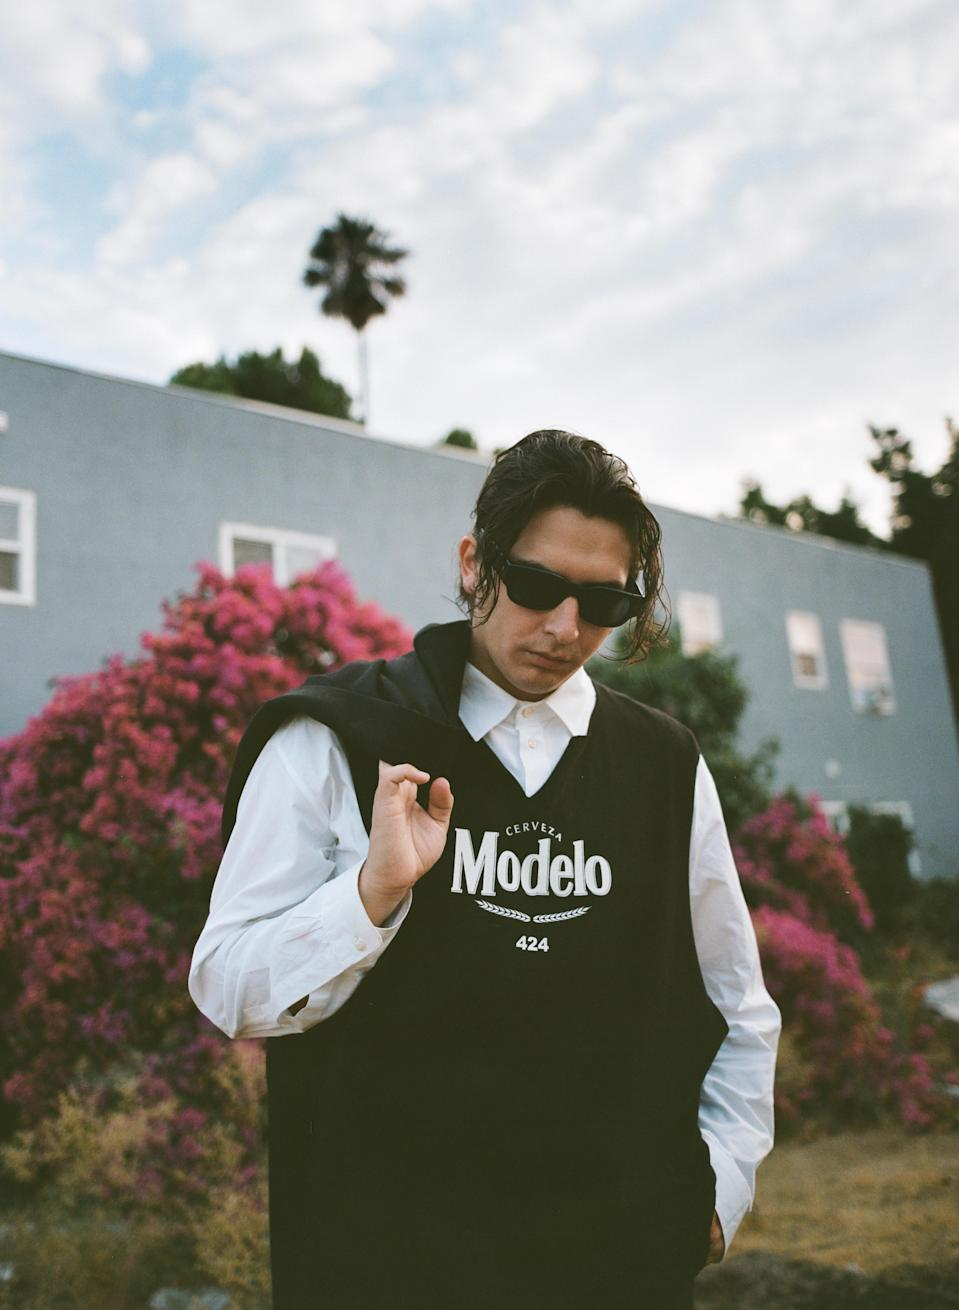 A look from the Modelo x 424 cobranded capsule collection. - Credit: Courtesy of Modelo